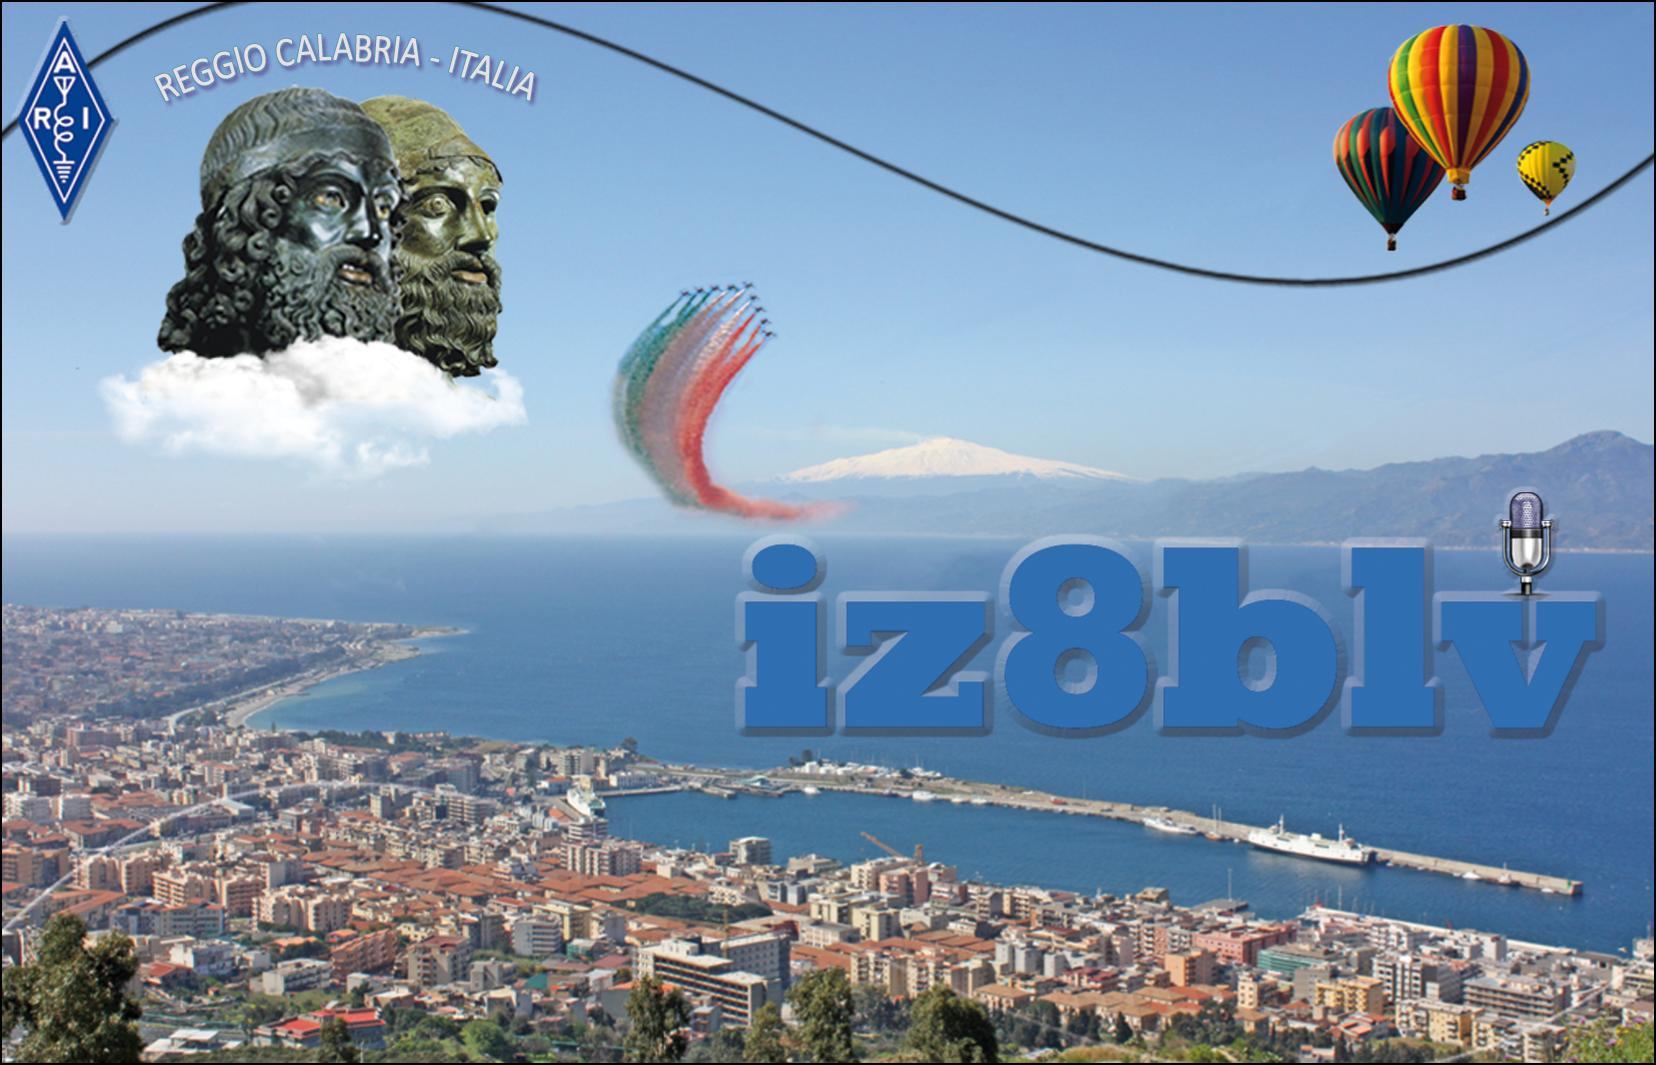 QSL image for IZ8BLV